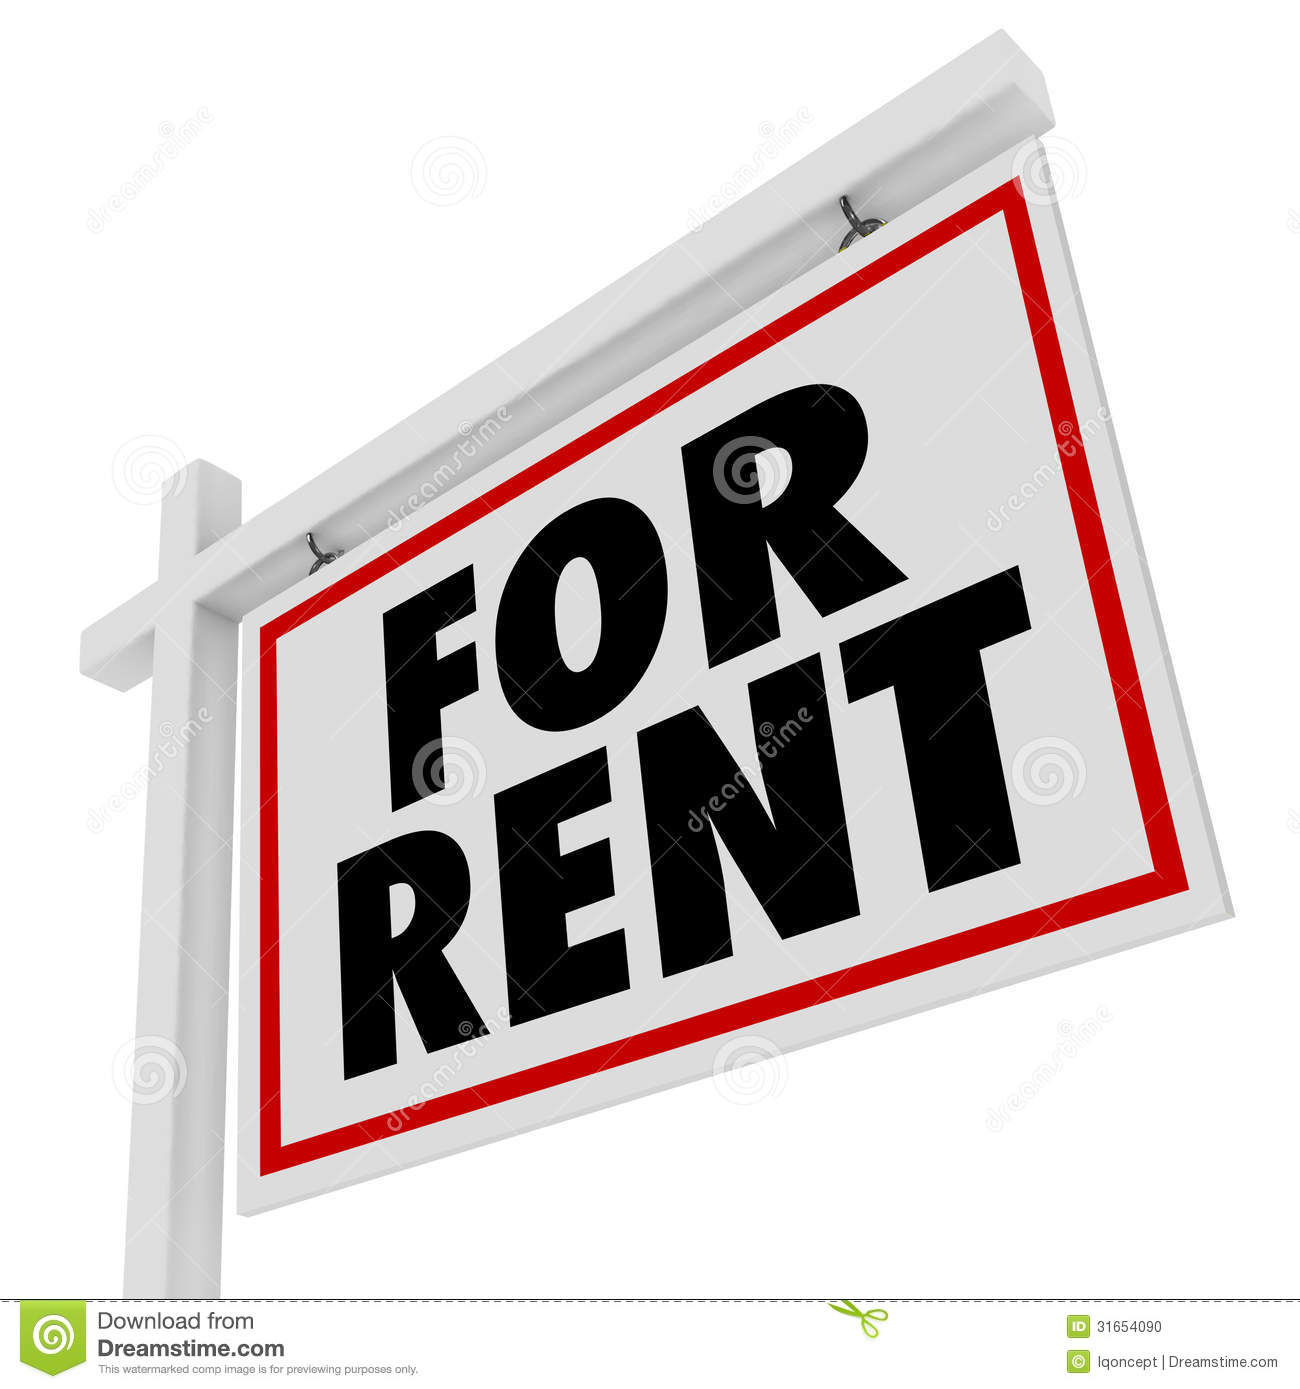 Renting Apartment: For Rent Real Estate Home Rental House Sign Stock Photo